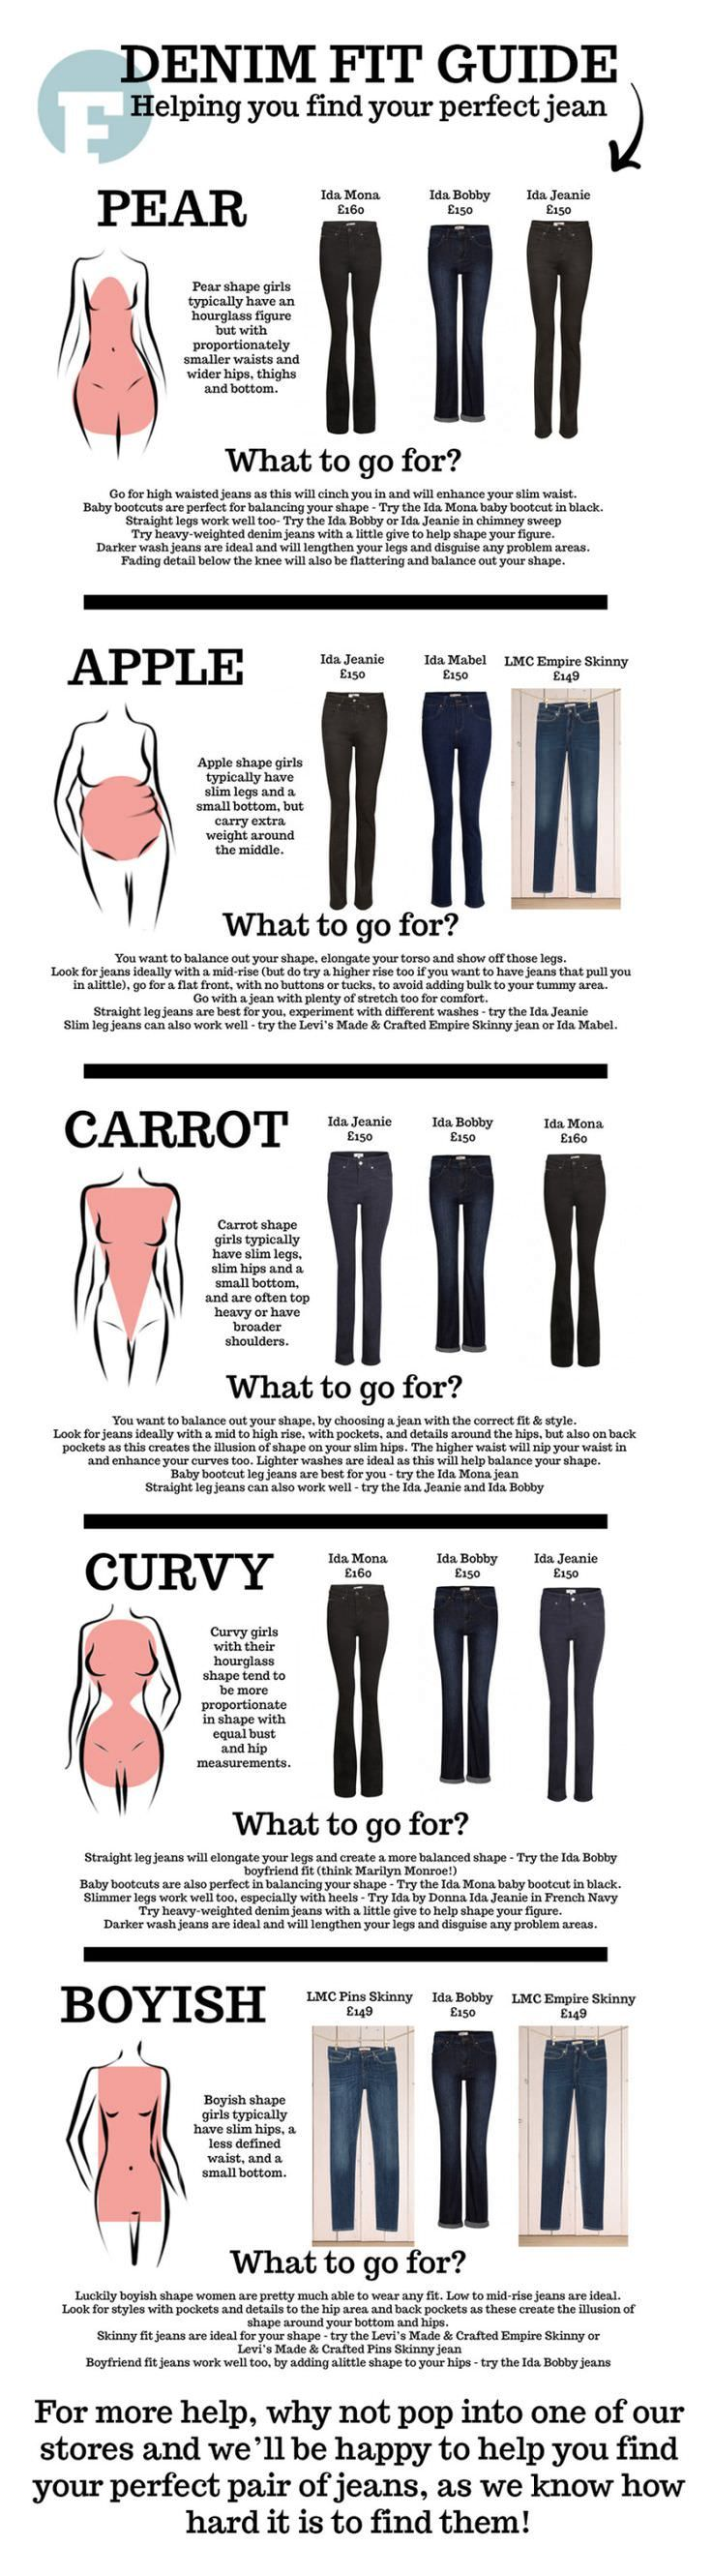 How to dress an apple shaped figure ehow - Denim Fit By Body Type